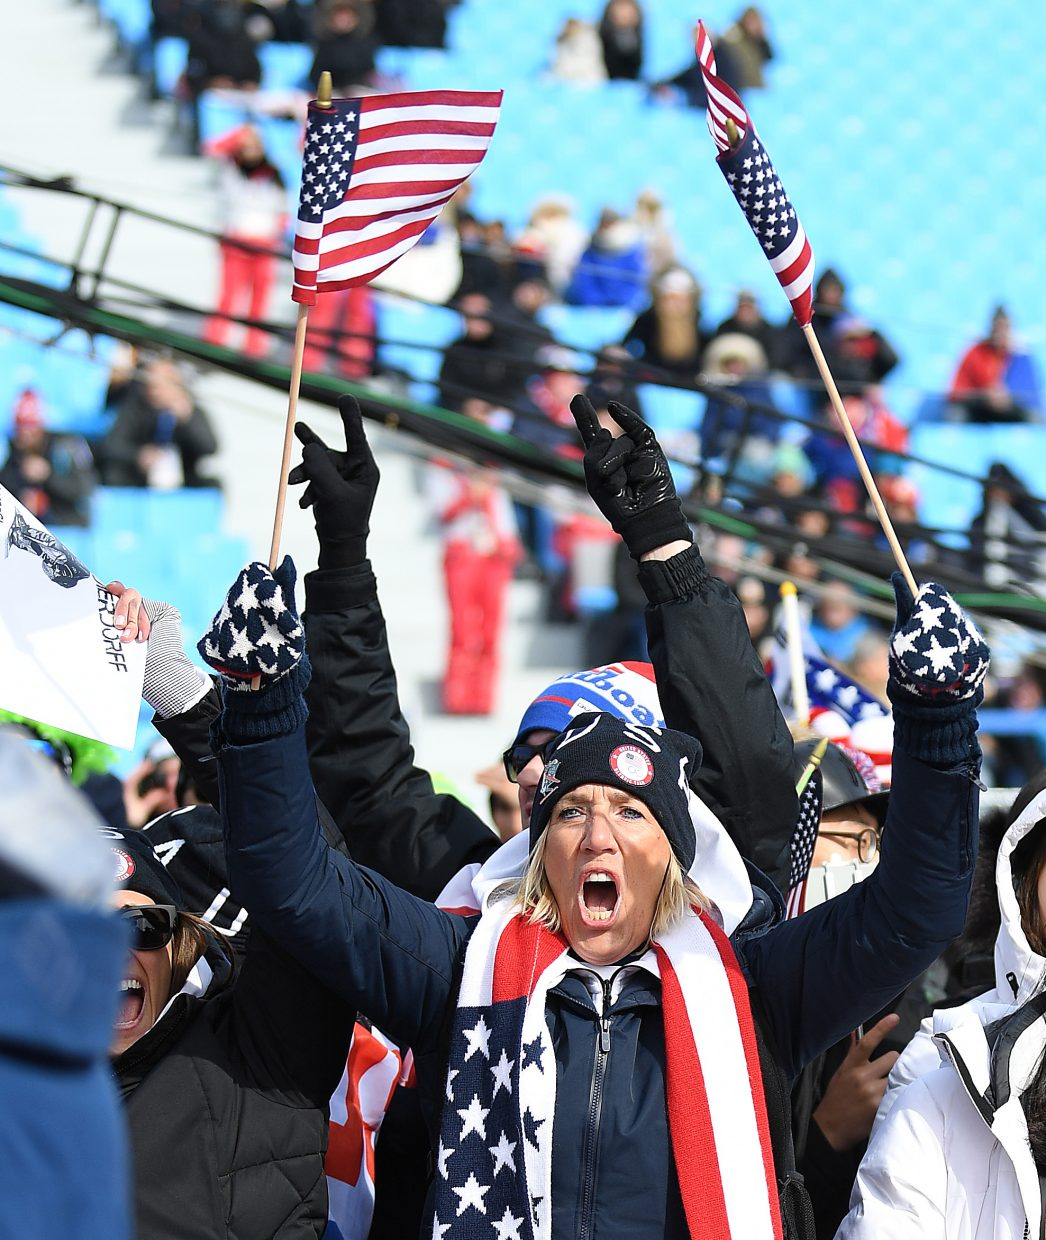 Mary Dierdorff cheers on her son, Mick, in the men's snowboard cross event at the 2018 Winter Olympics. Emotion is thing about the Olympics and there's plenty of that in this shot.